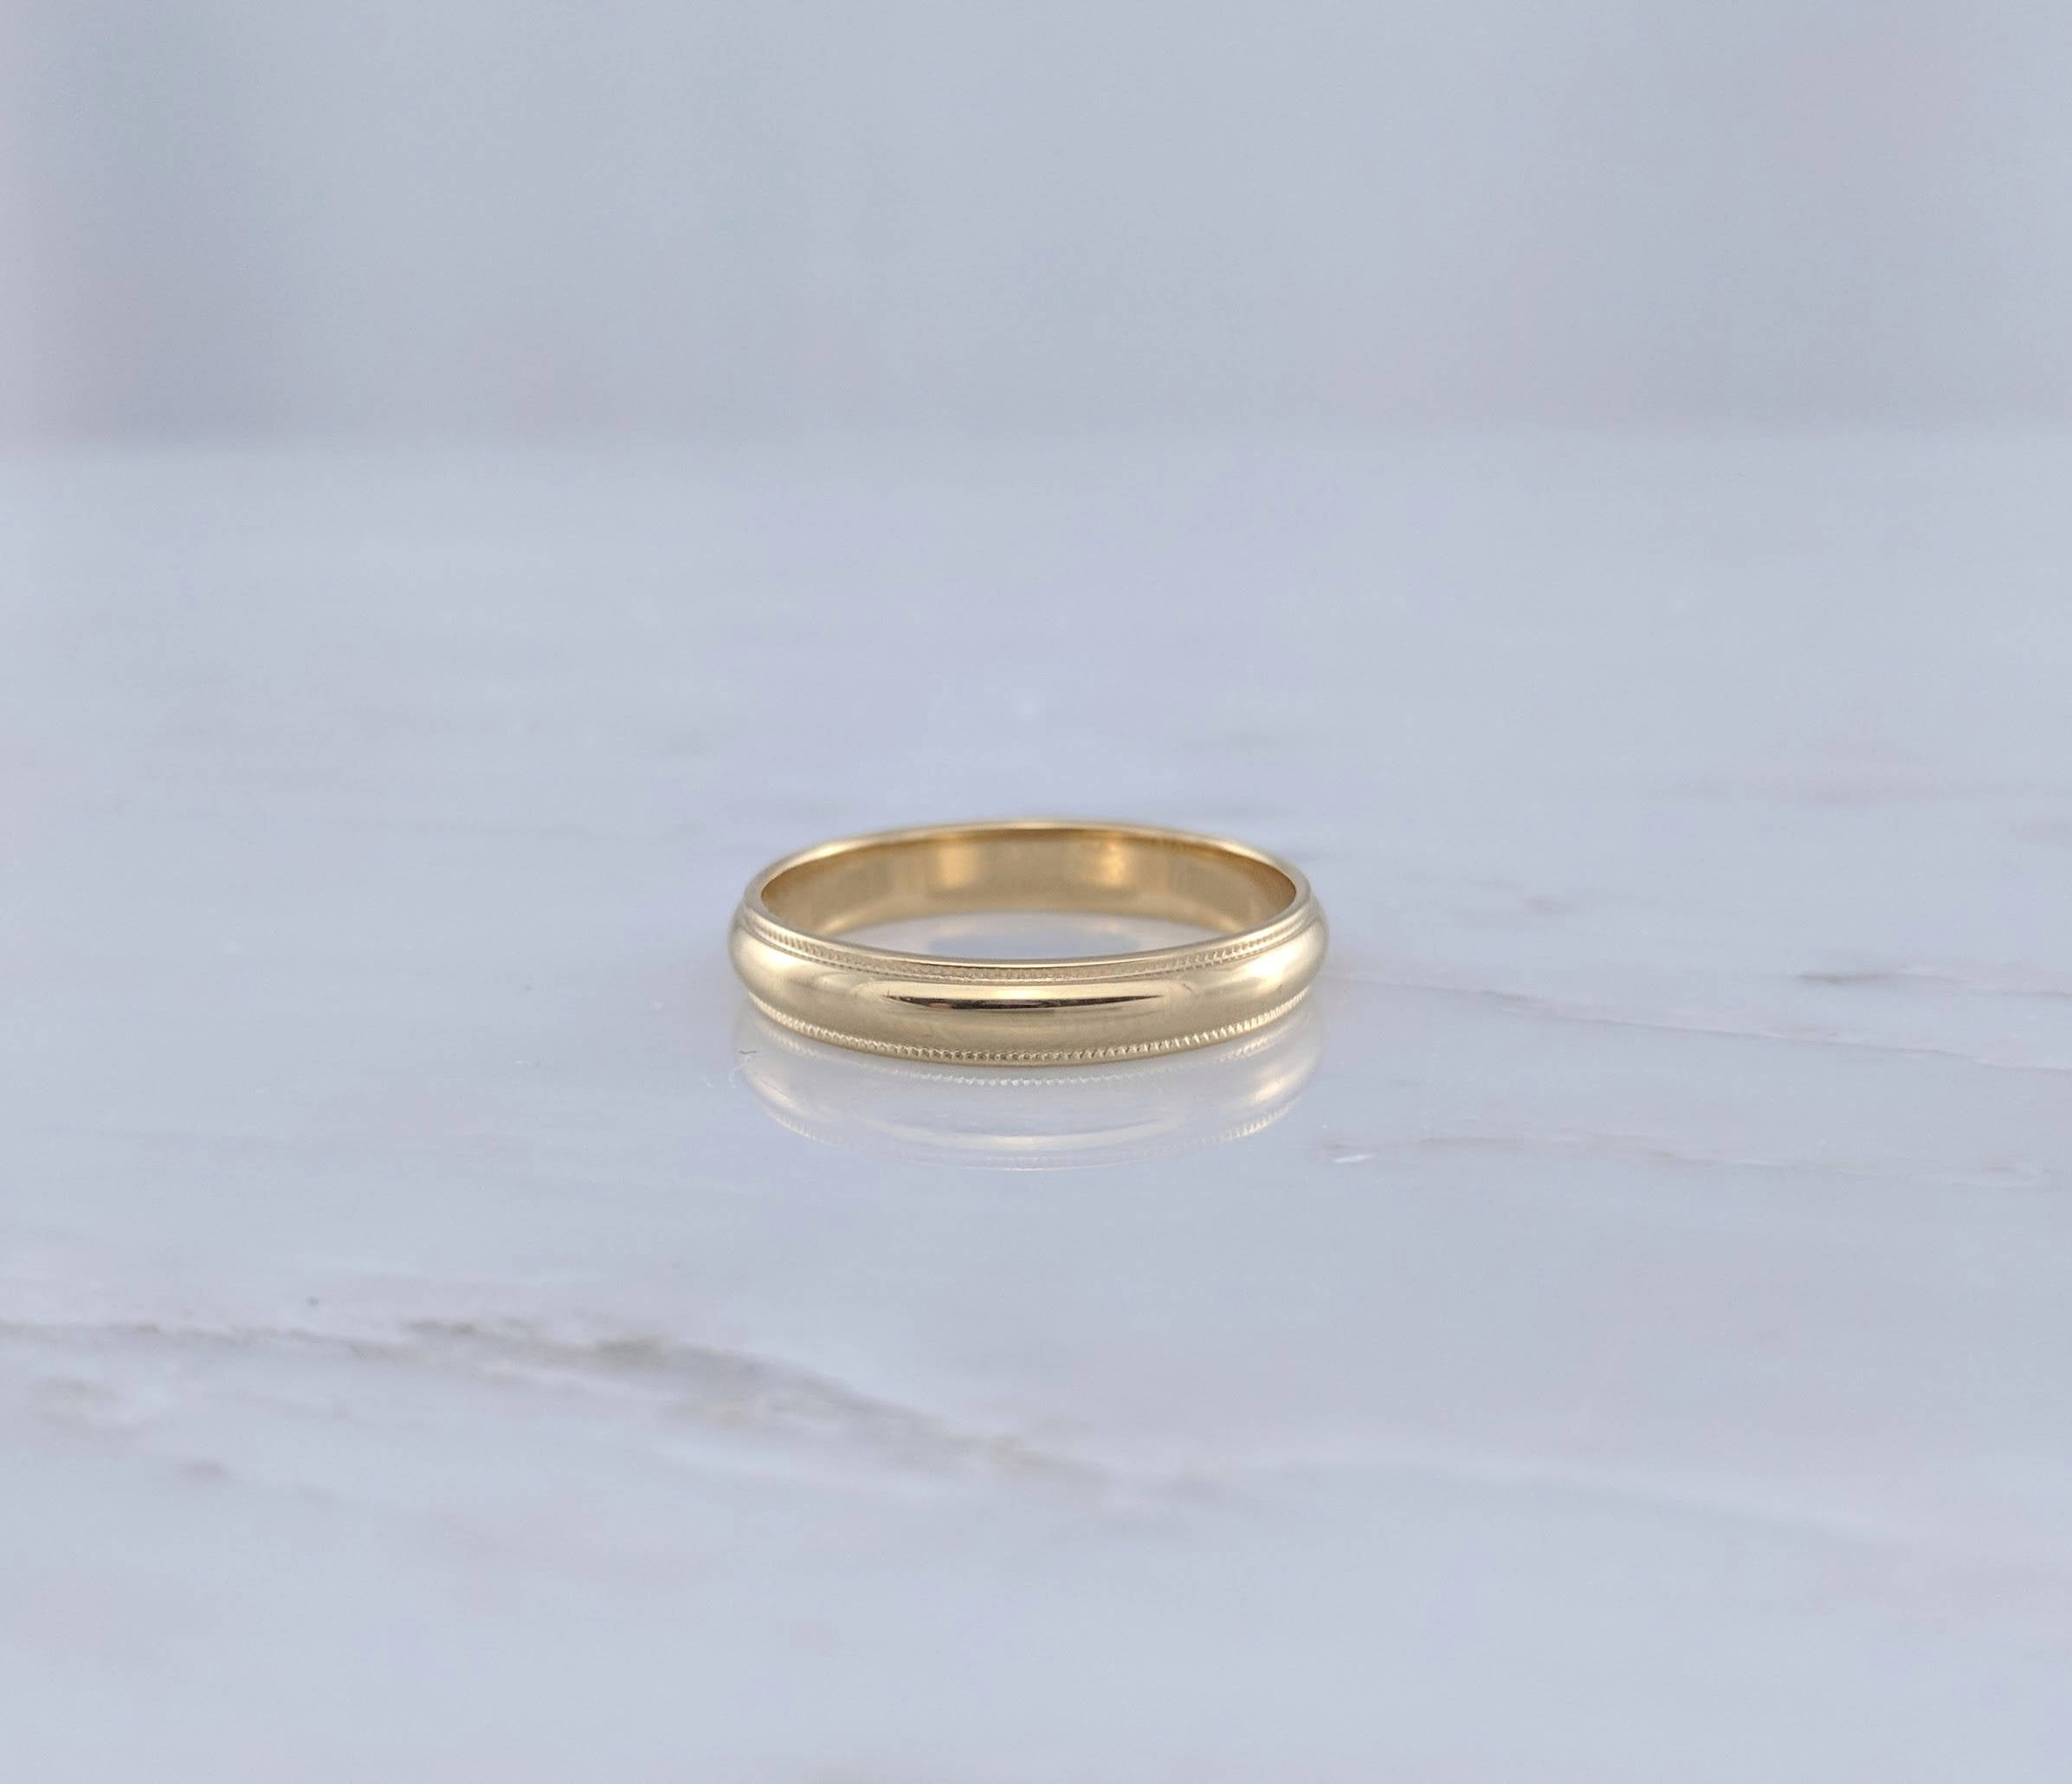 Men's 4mm 14K Yellow Gold Half Round Wedding Band with Milgrain Edge